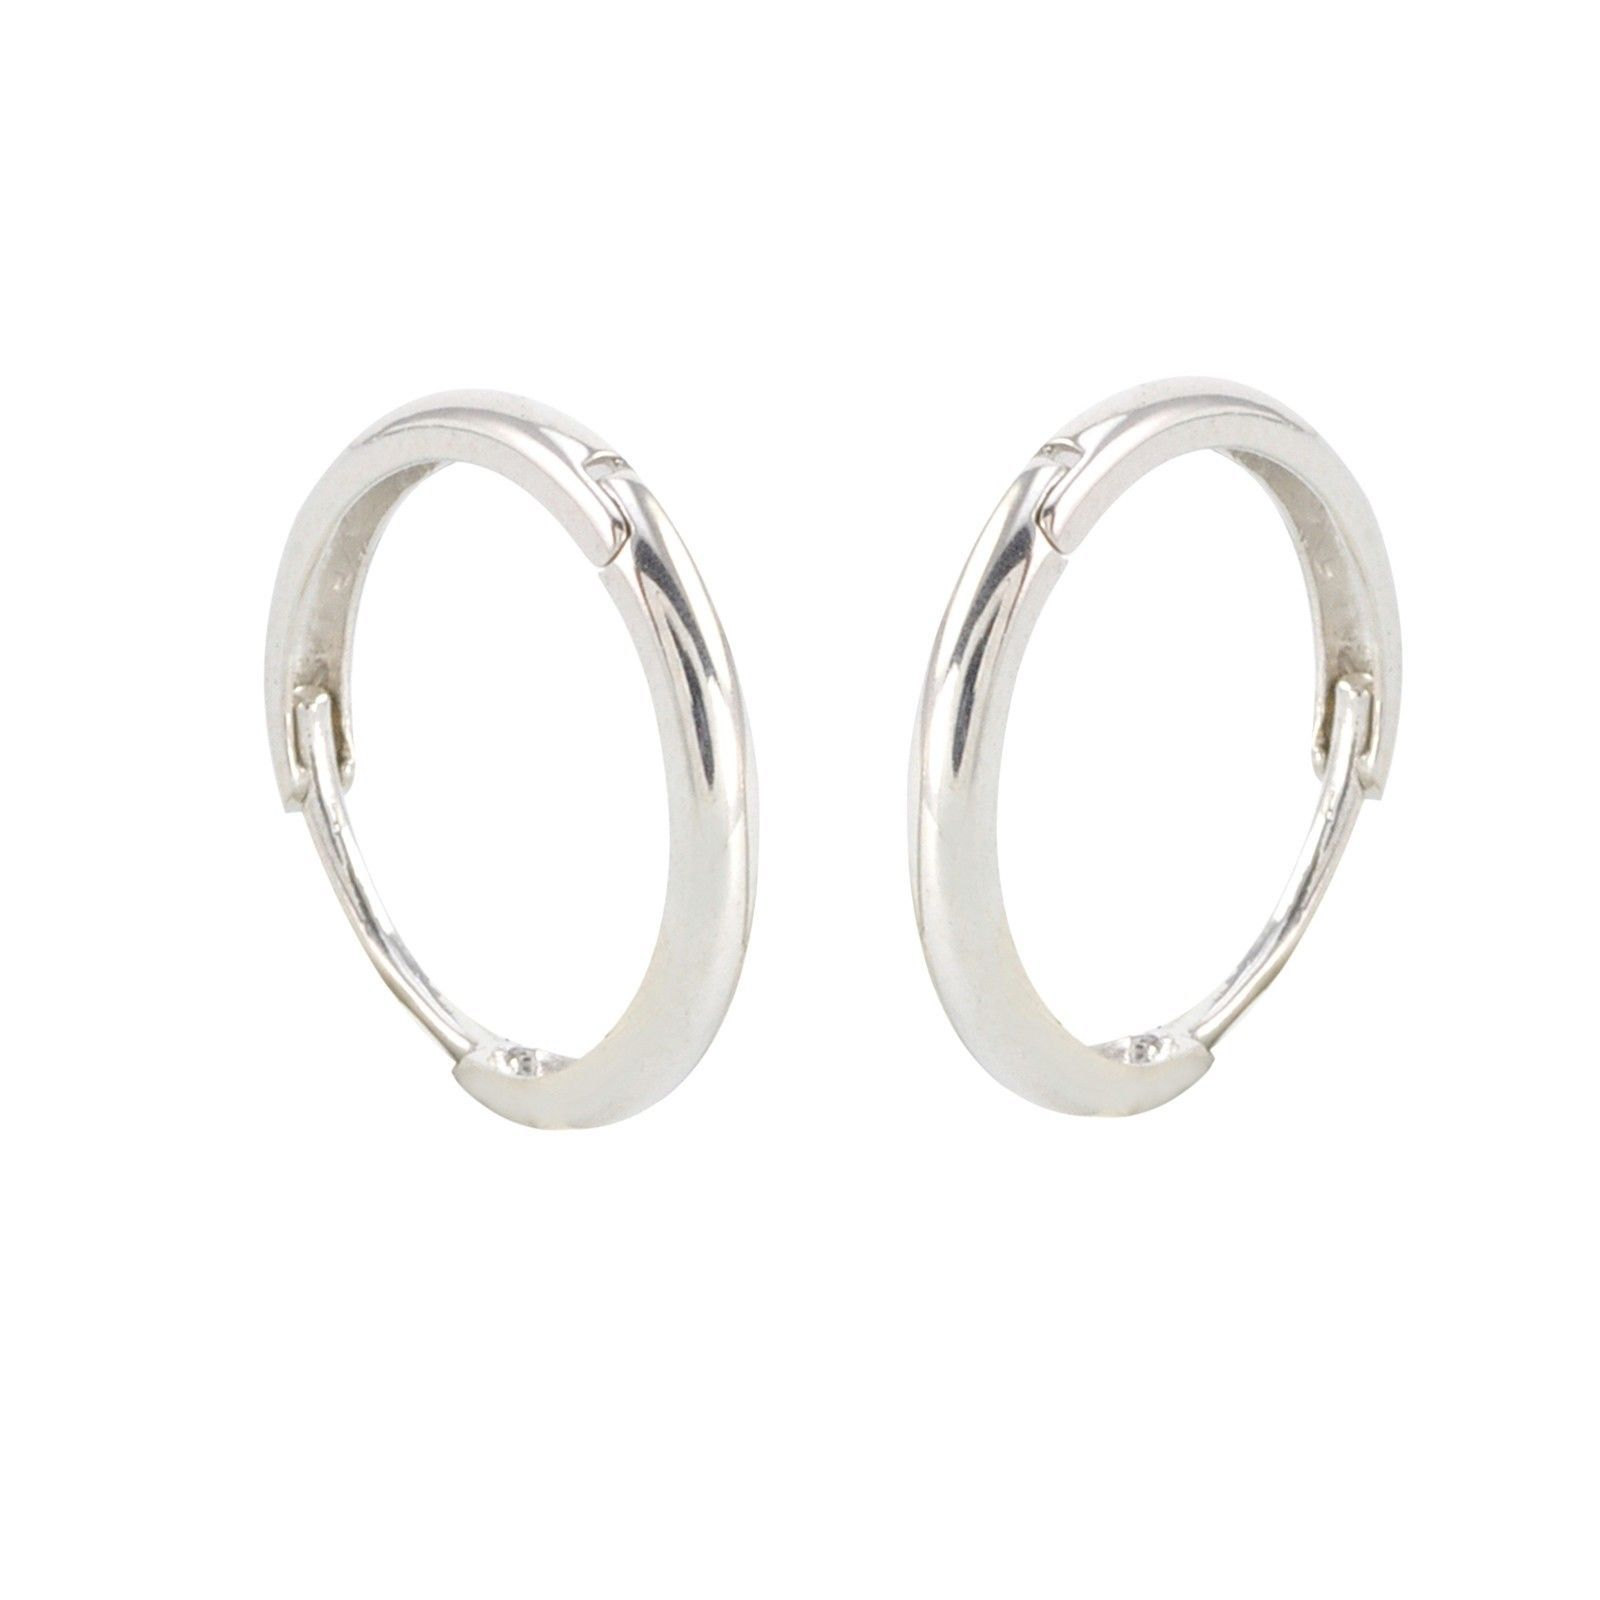 10k white gold hoop earrings 15mm medium large hinged. Black Bedroom Furniture Sets. Home Design Ideas